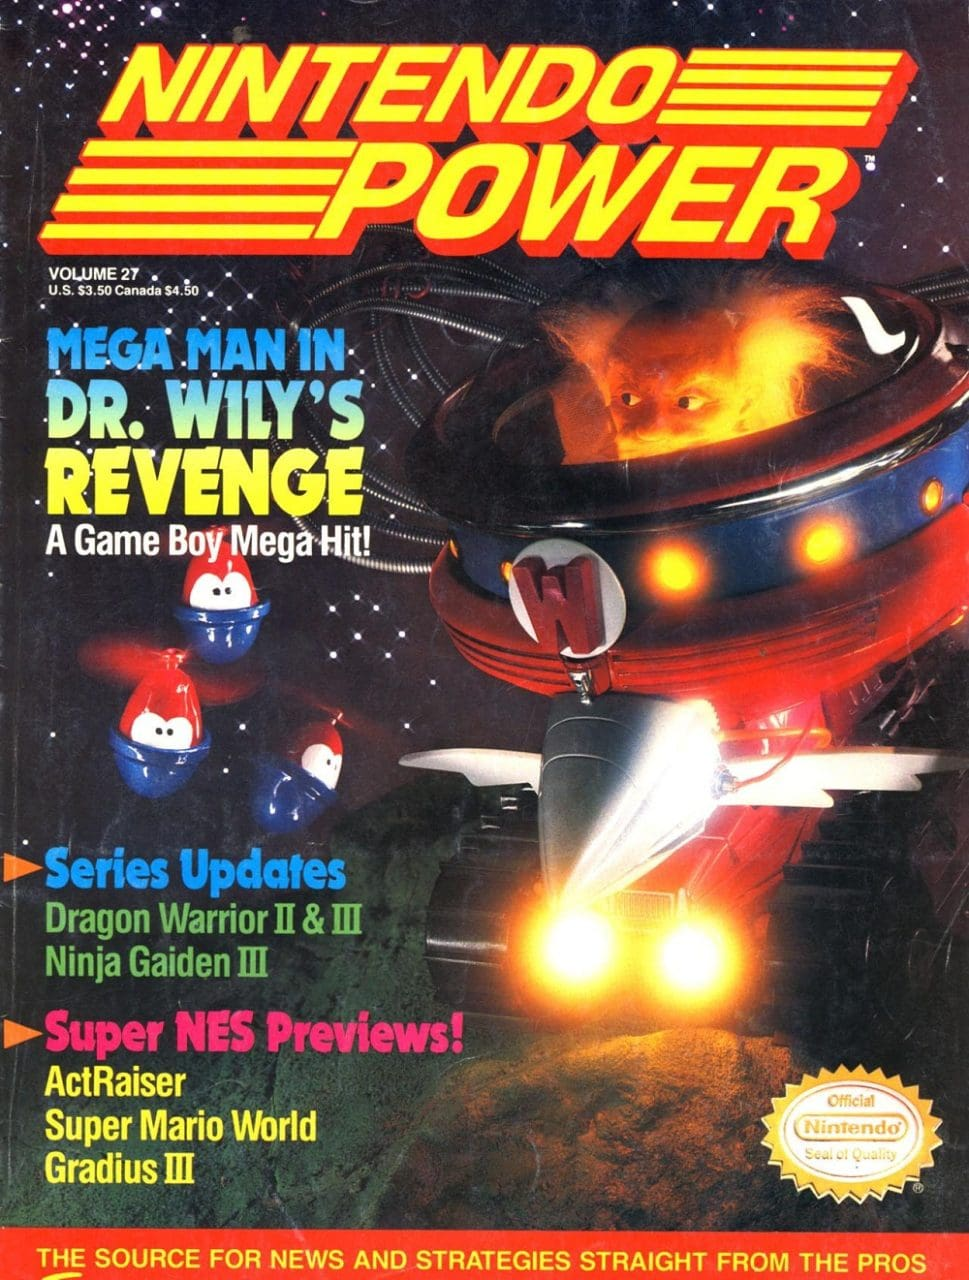 magazine-nintendo-power-mega-man-dr-wilys-revenge-v4-8-of-12-1991_8-page-1